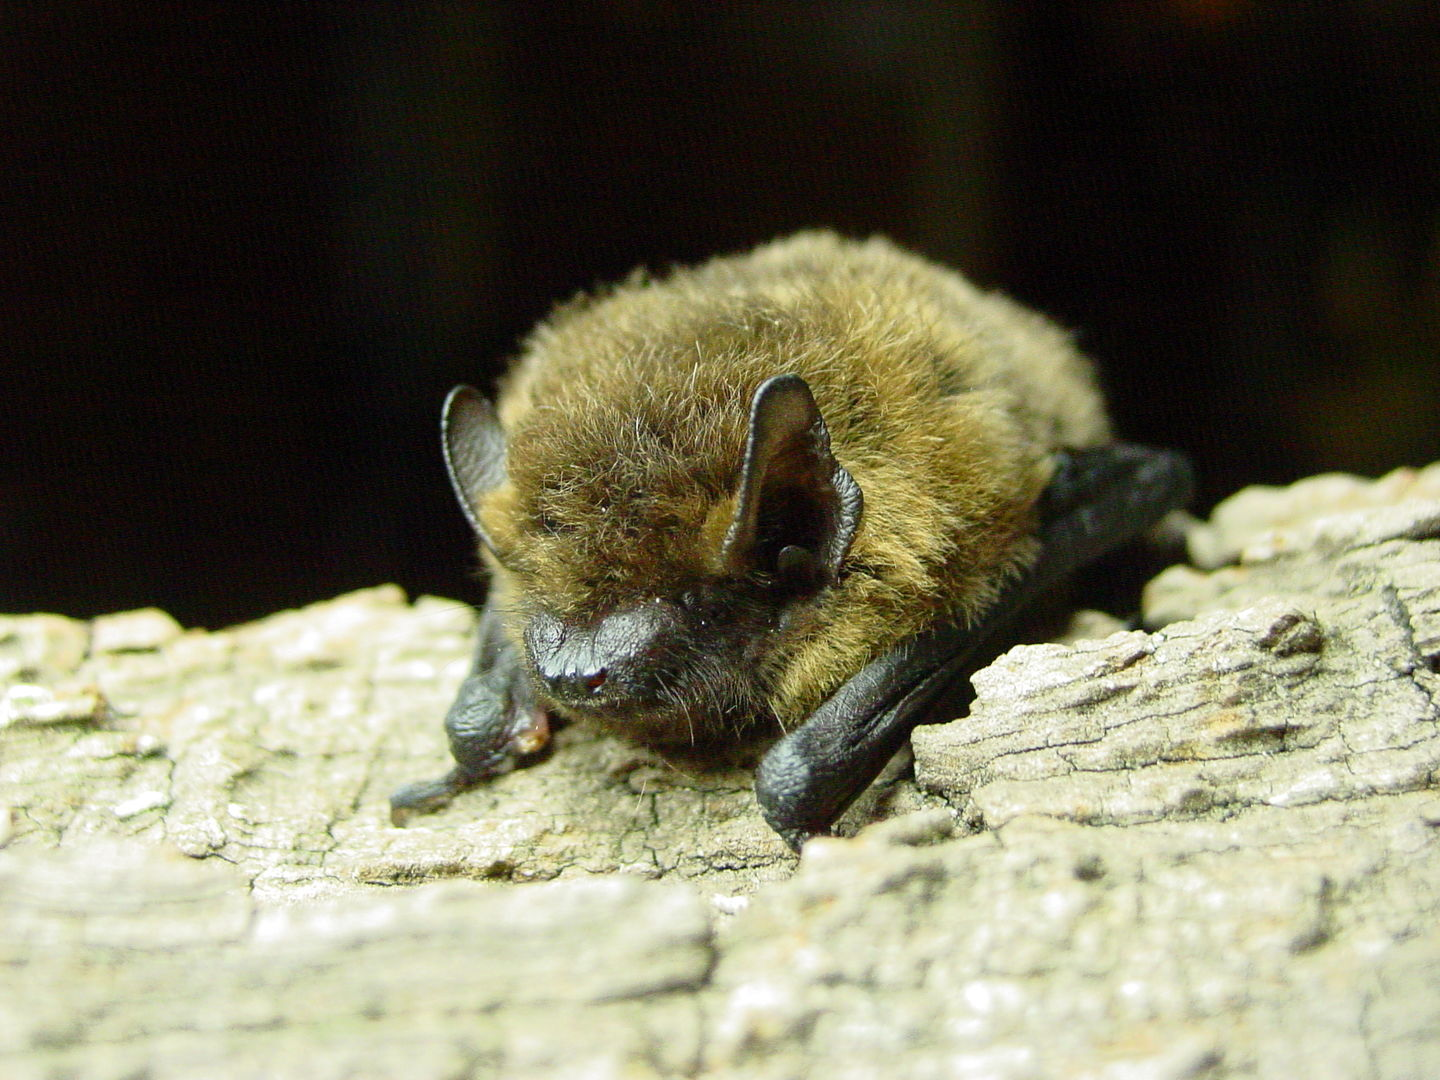 Das Foto zeigt eine Zwergfledermaus // the photo shows a Pipistrellus pipistrellus